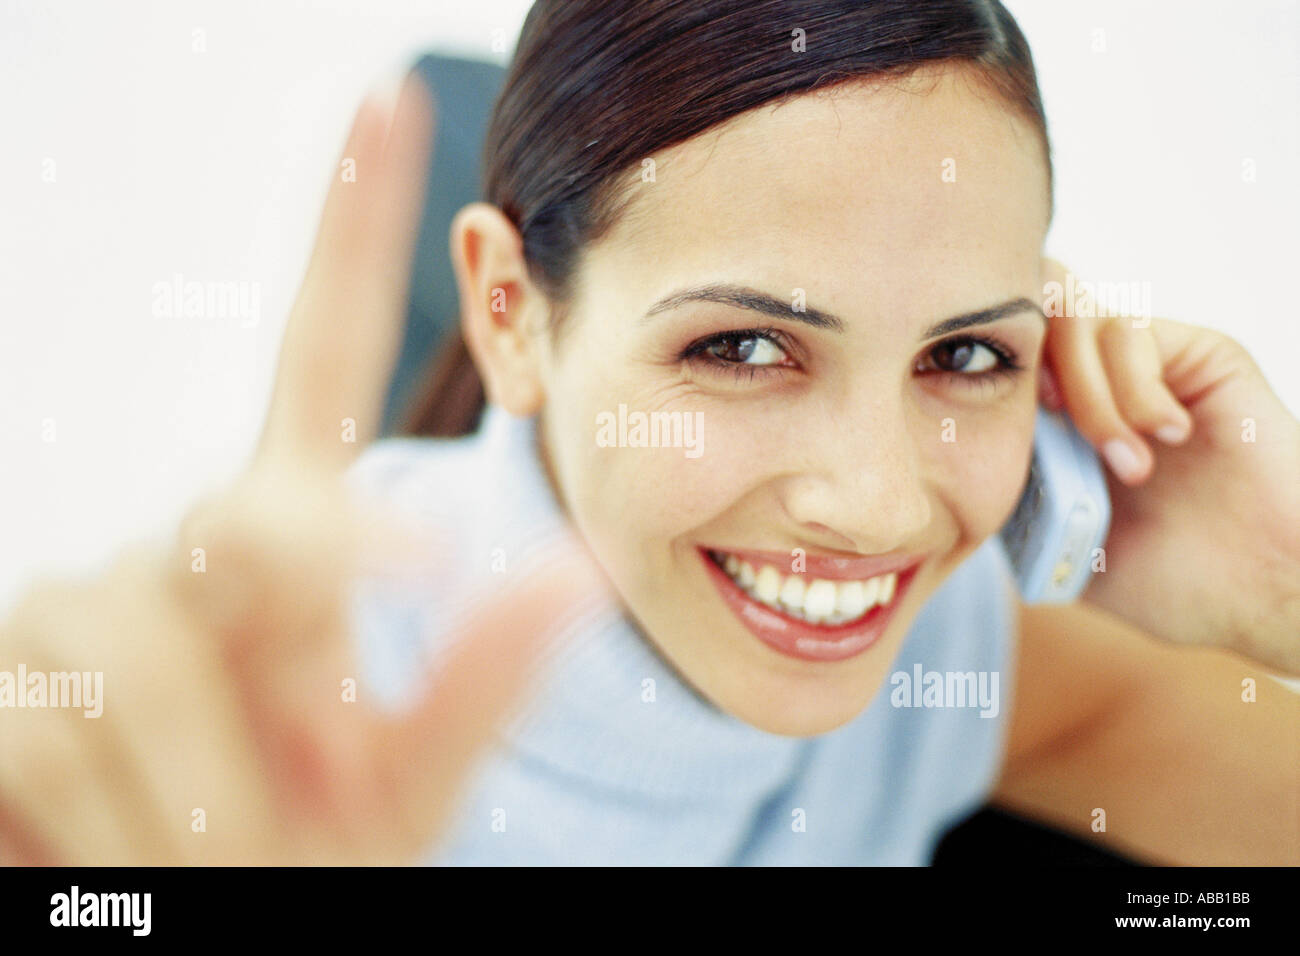 Businesswoman using cell phone Photo Stock